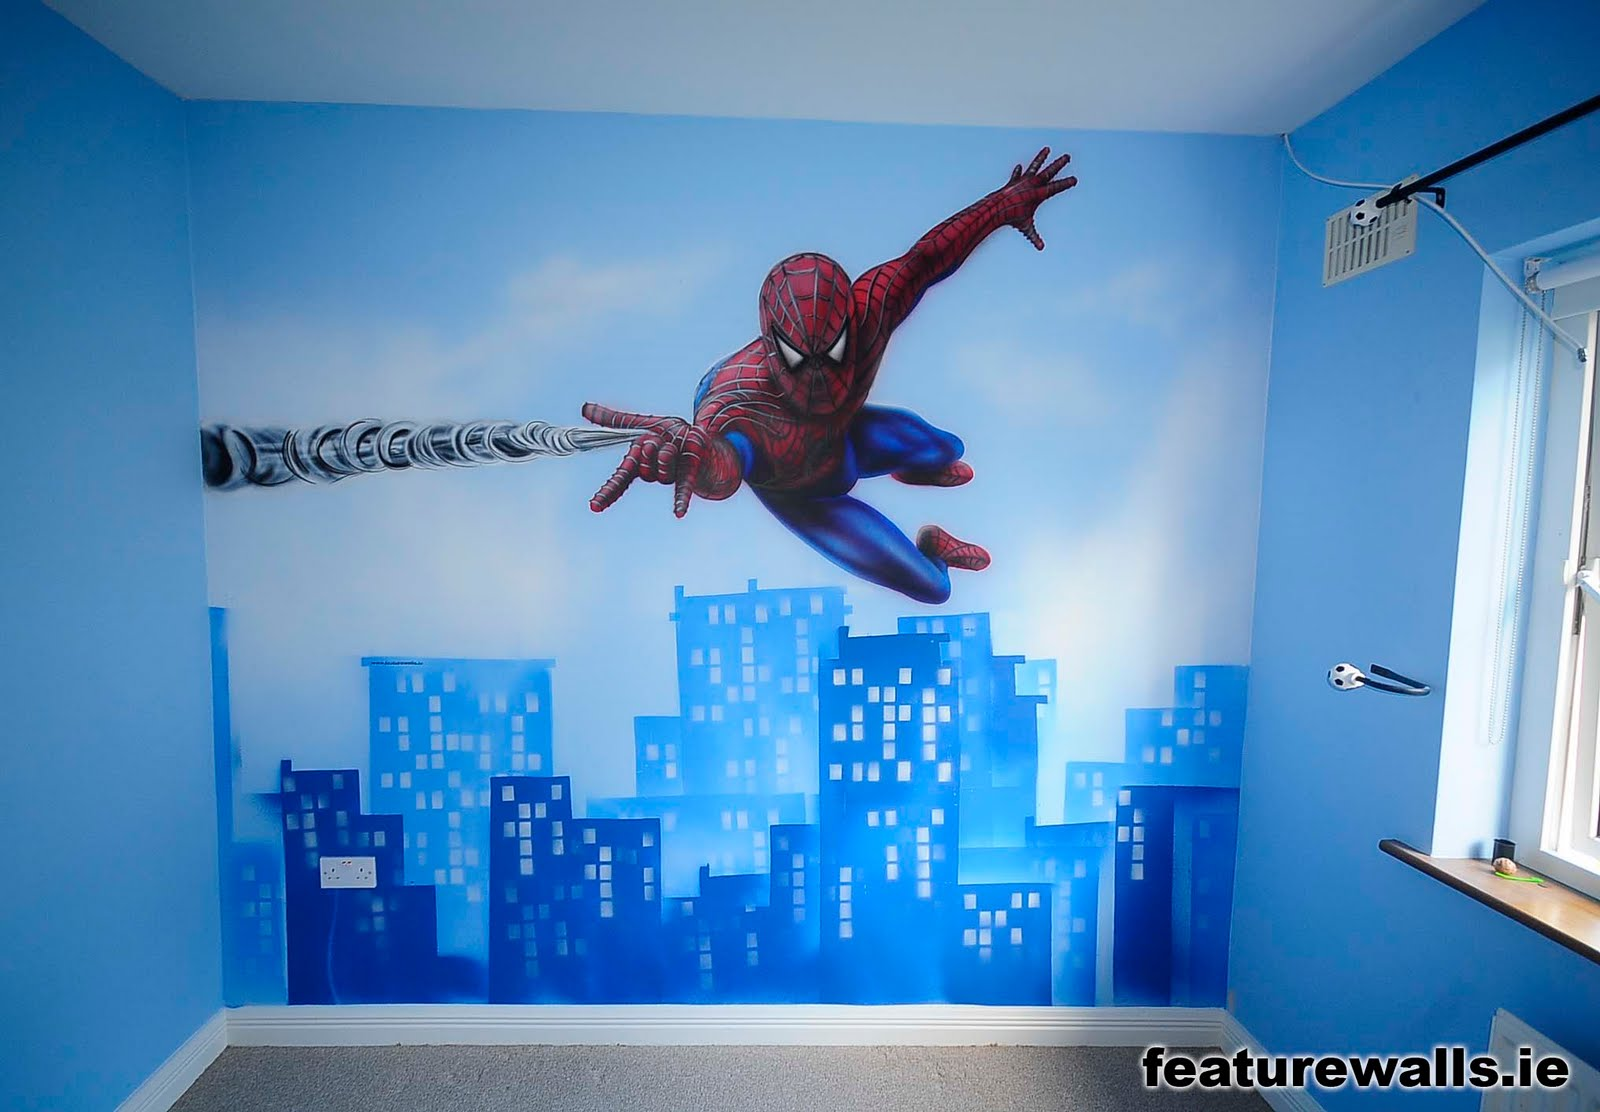 Kids bedroom painting ideas wallpress 1080p hd desktop for Boys wall mural